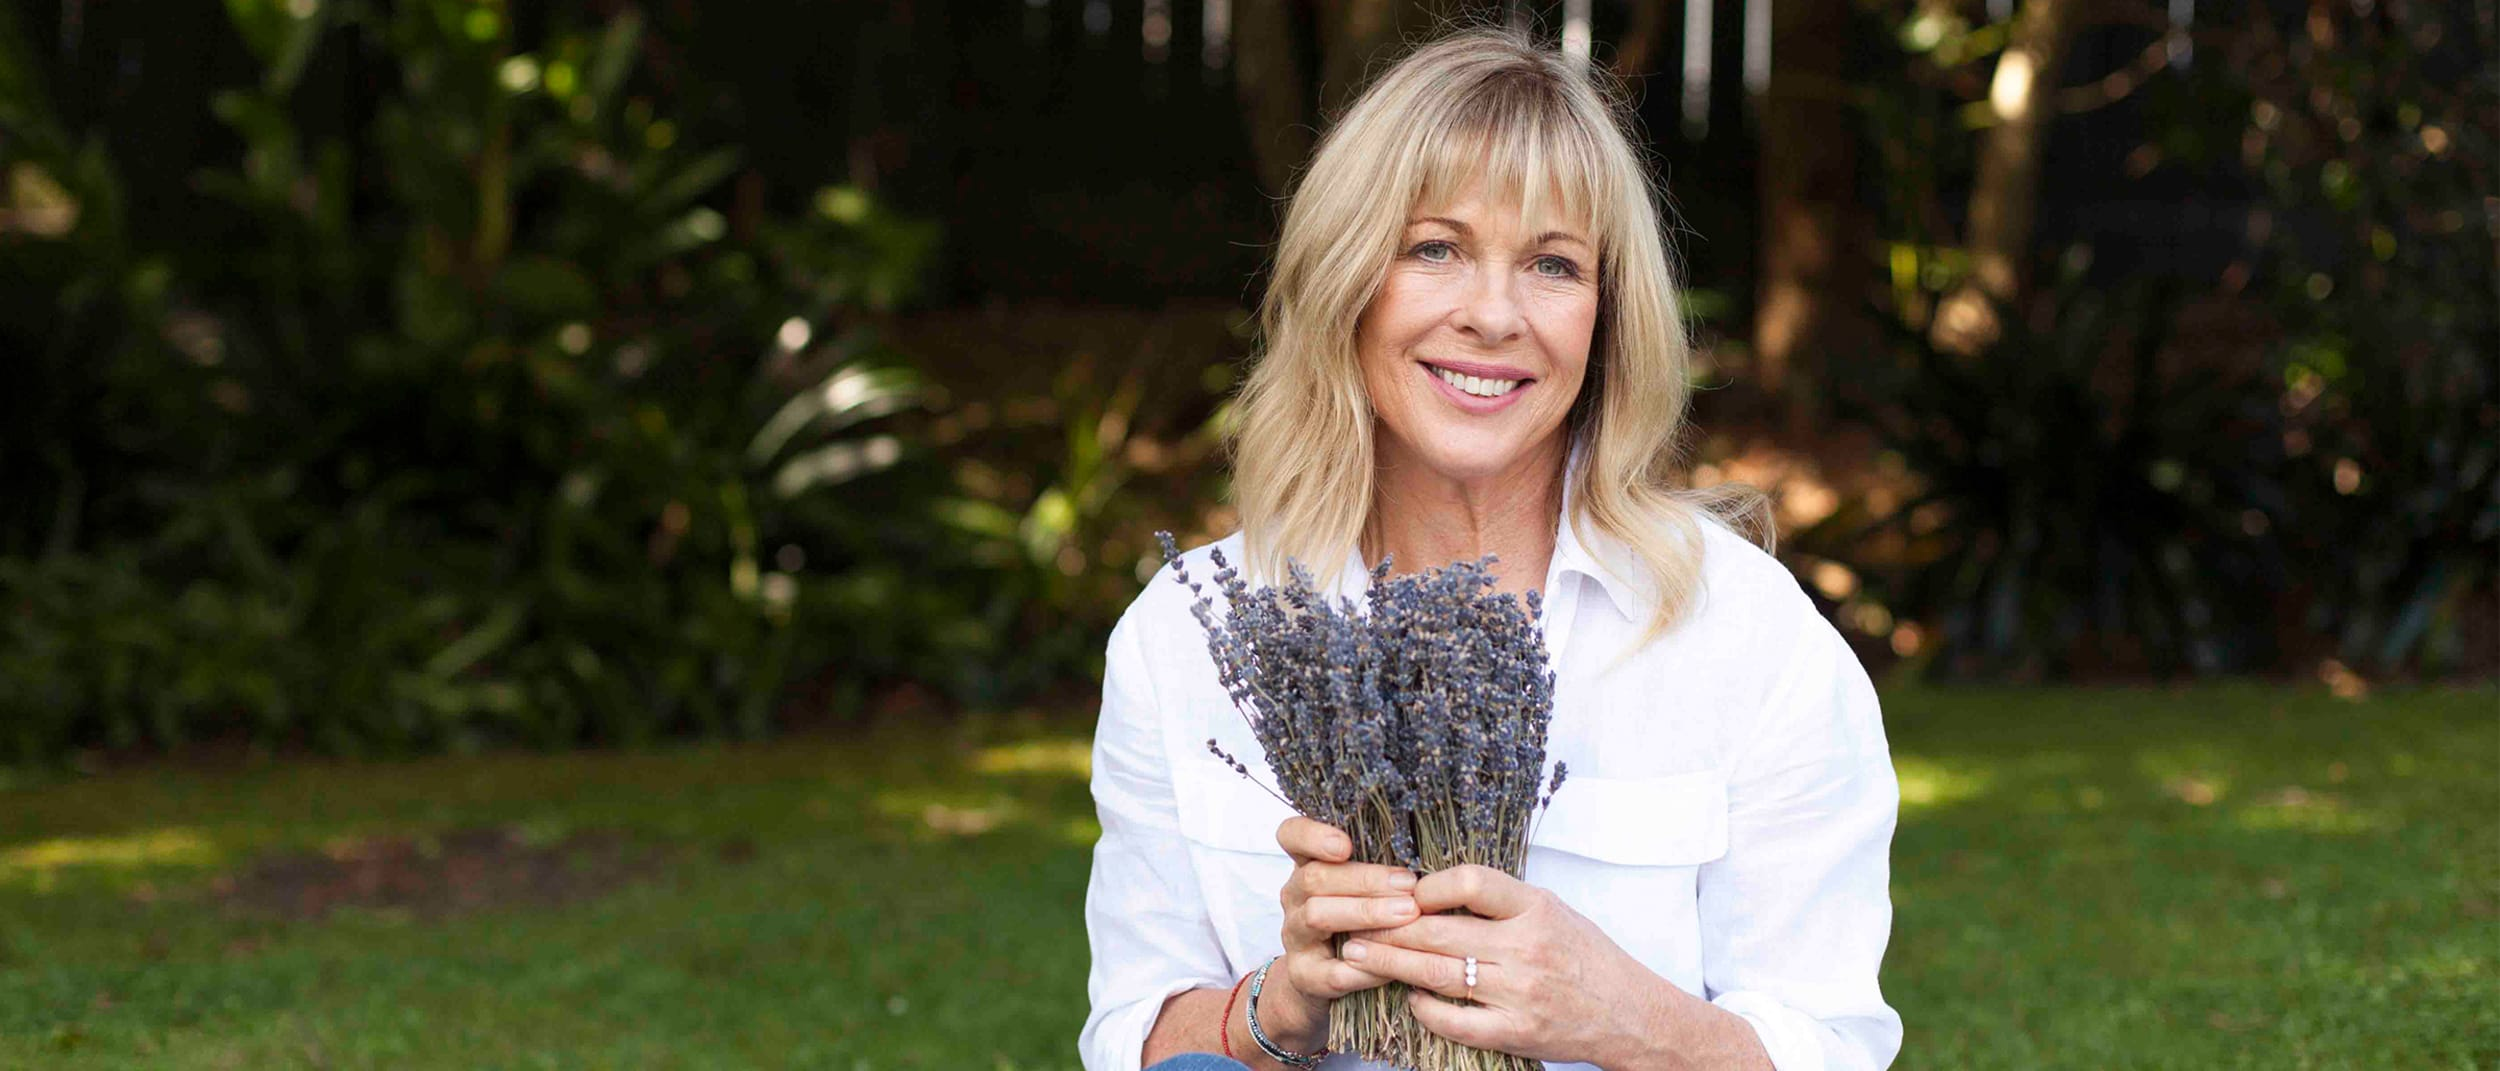 L'Occitane & Annabel Langbein partnership